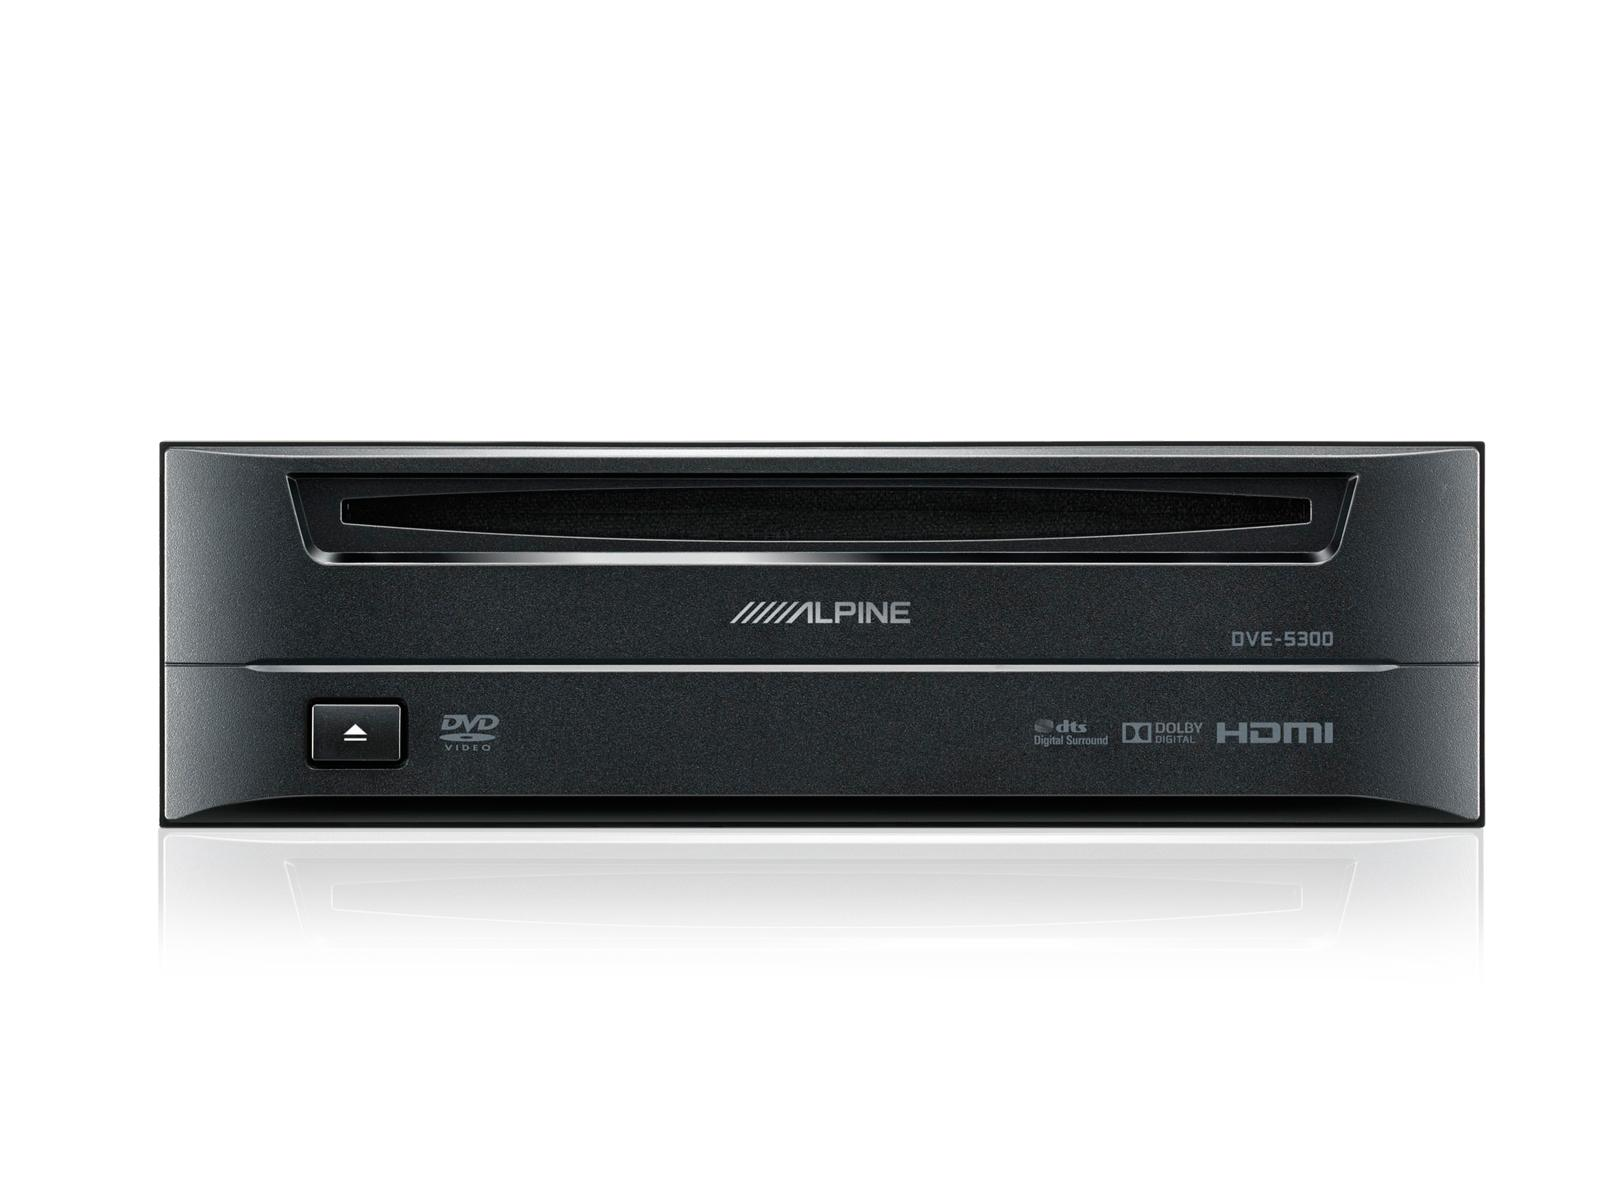 dve 5300 lecteur cd dvd pour ine w997d et x801d u hdmi chassis 1din 354012. Black Bedroom Furniture Sets. Home Design Ideas